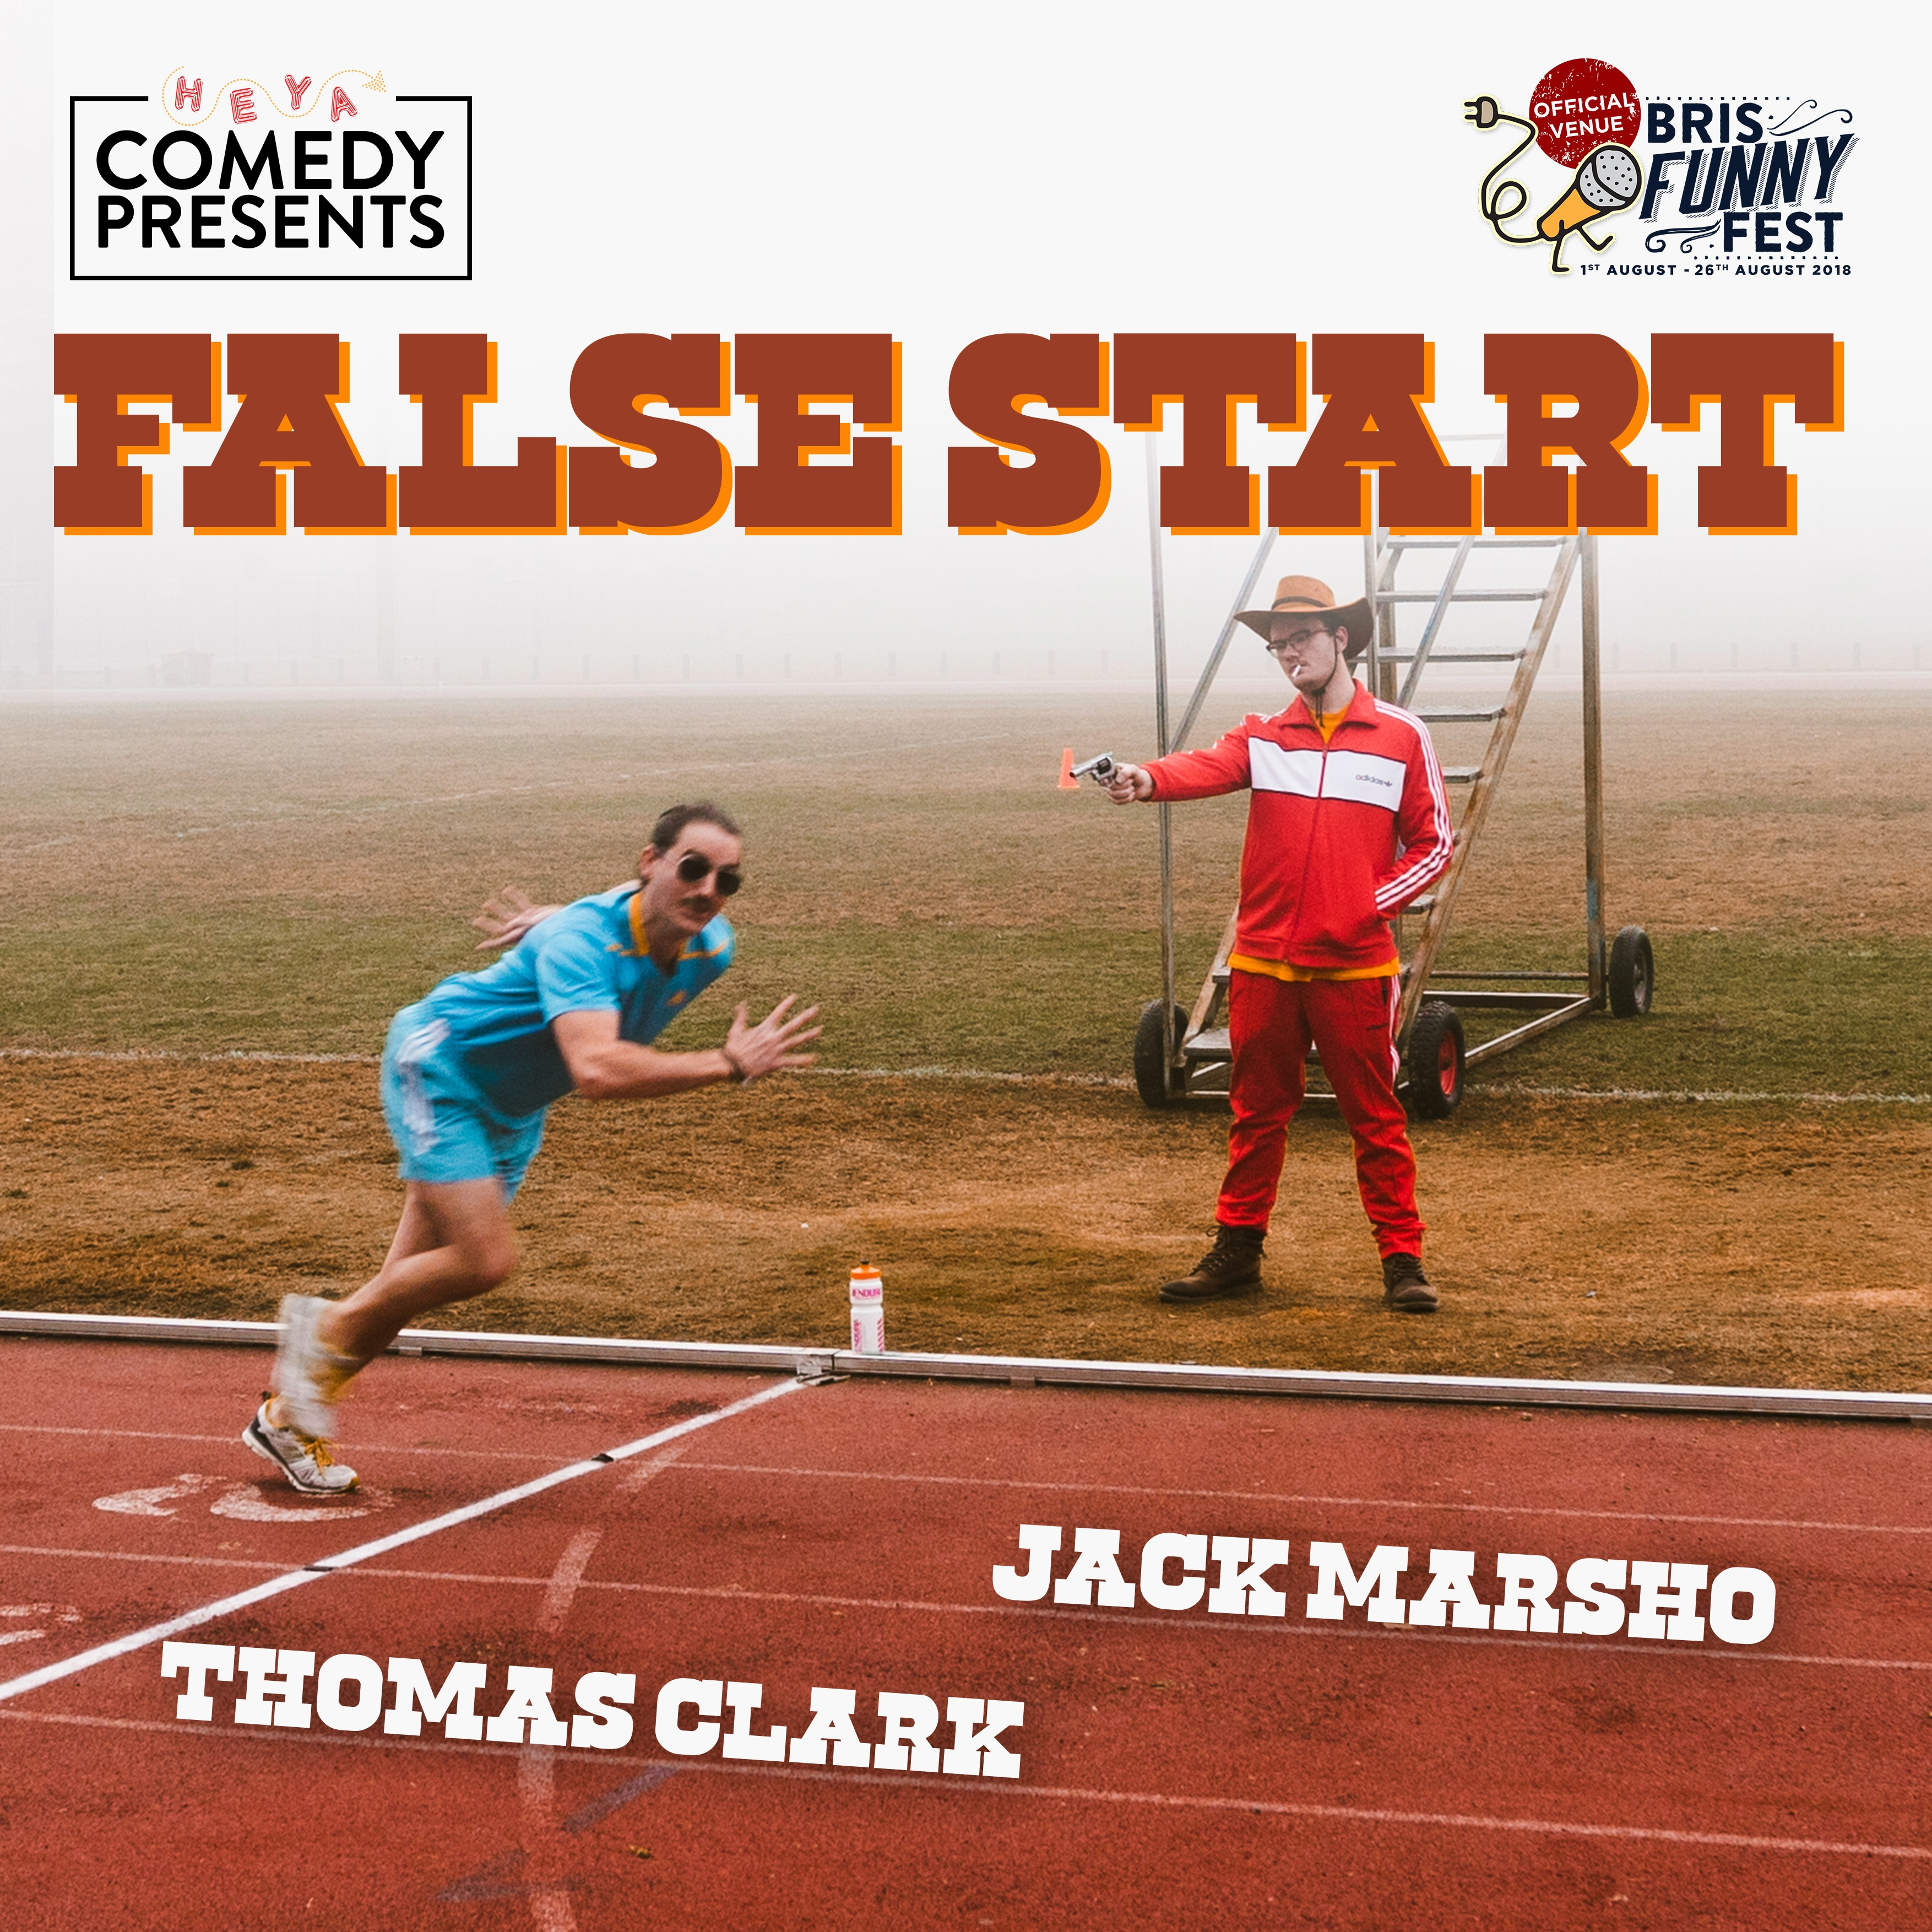 False Start, performed by Jack Marsho, Tom Clark